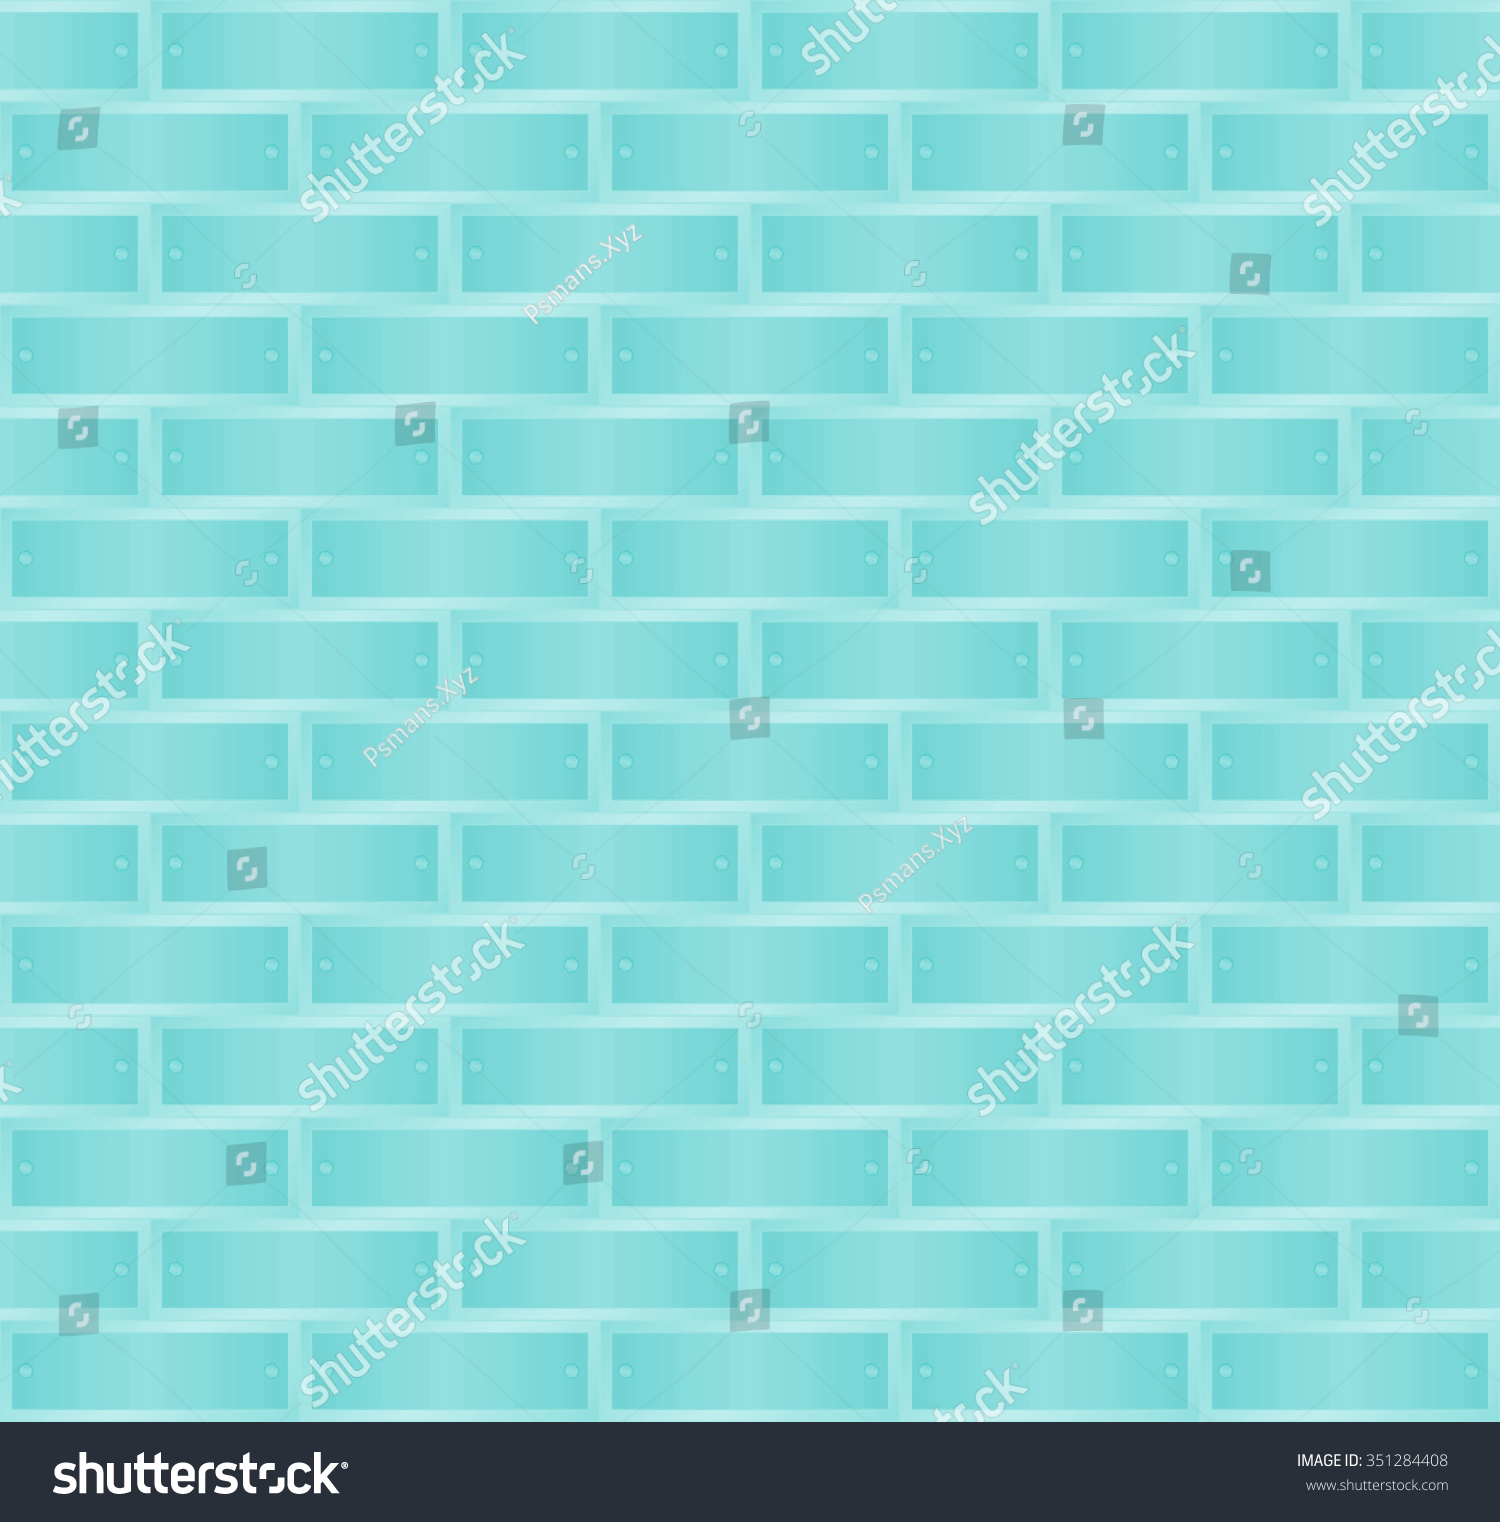 Turquoise Brick Wallpaper Metallic Light Turquoise Blue Texture Pattern Background